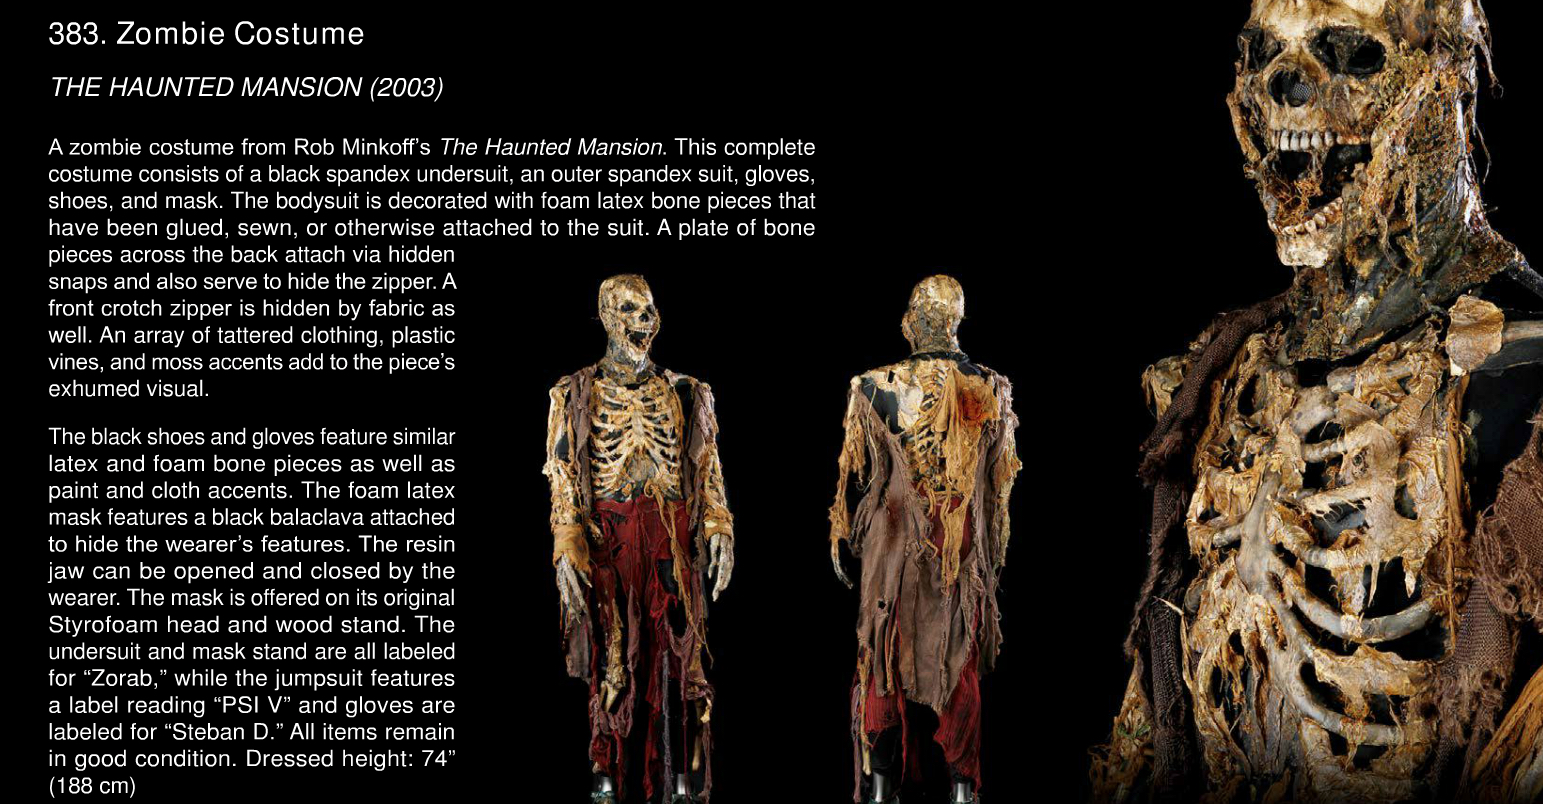 Rick Baker Zombie Costume Auction